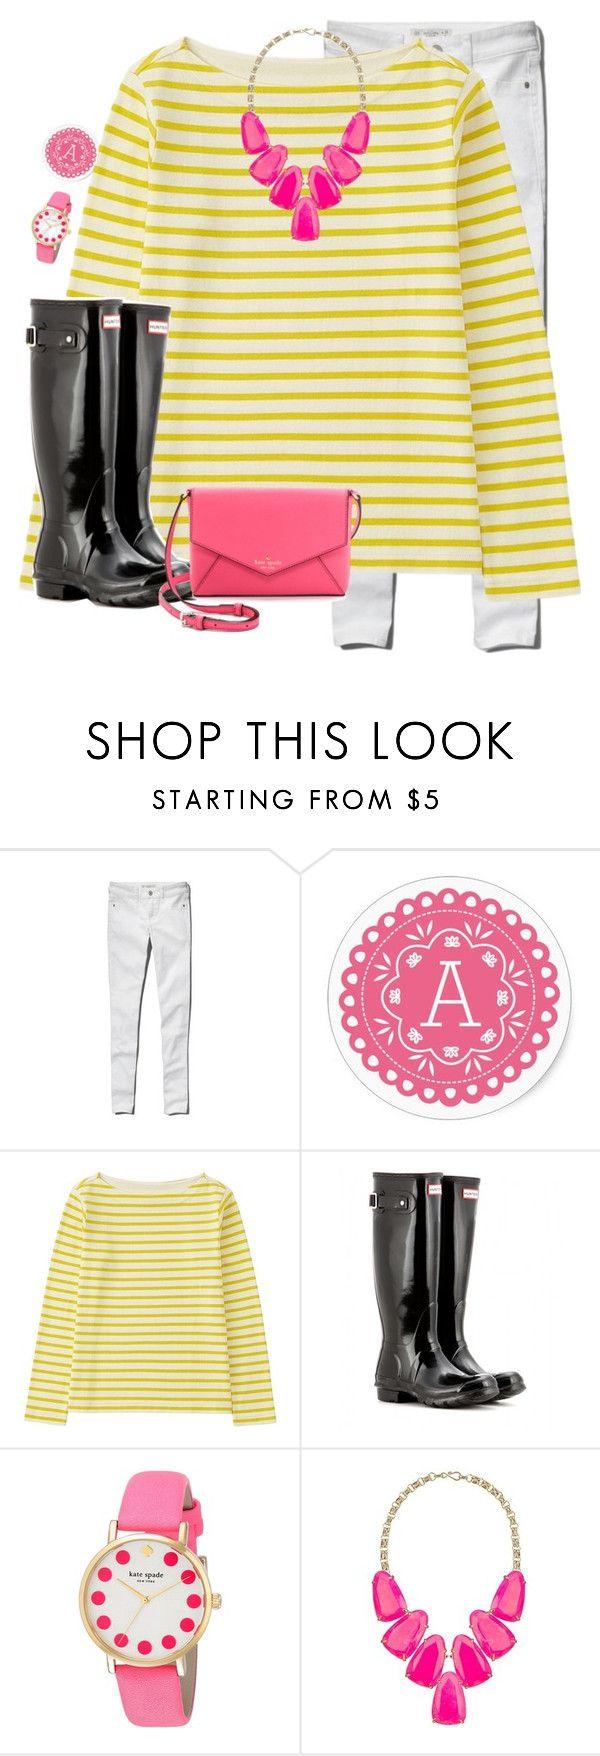 """""""Well if you want to give us a two hour delay, I'm fine with that """" by avamariebrown ❤ liked on Polyvore featuring Abercrombie & Fitch, Uniqlo, Hunter, Kate Spade, Kendra Scott, women's clothing, women's fashion, women, female and woman"""